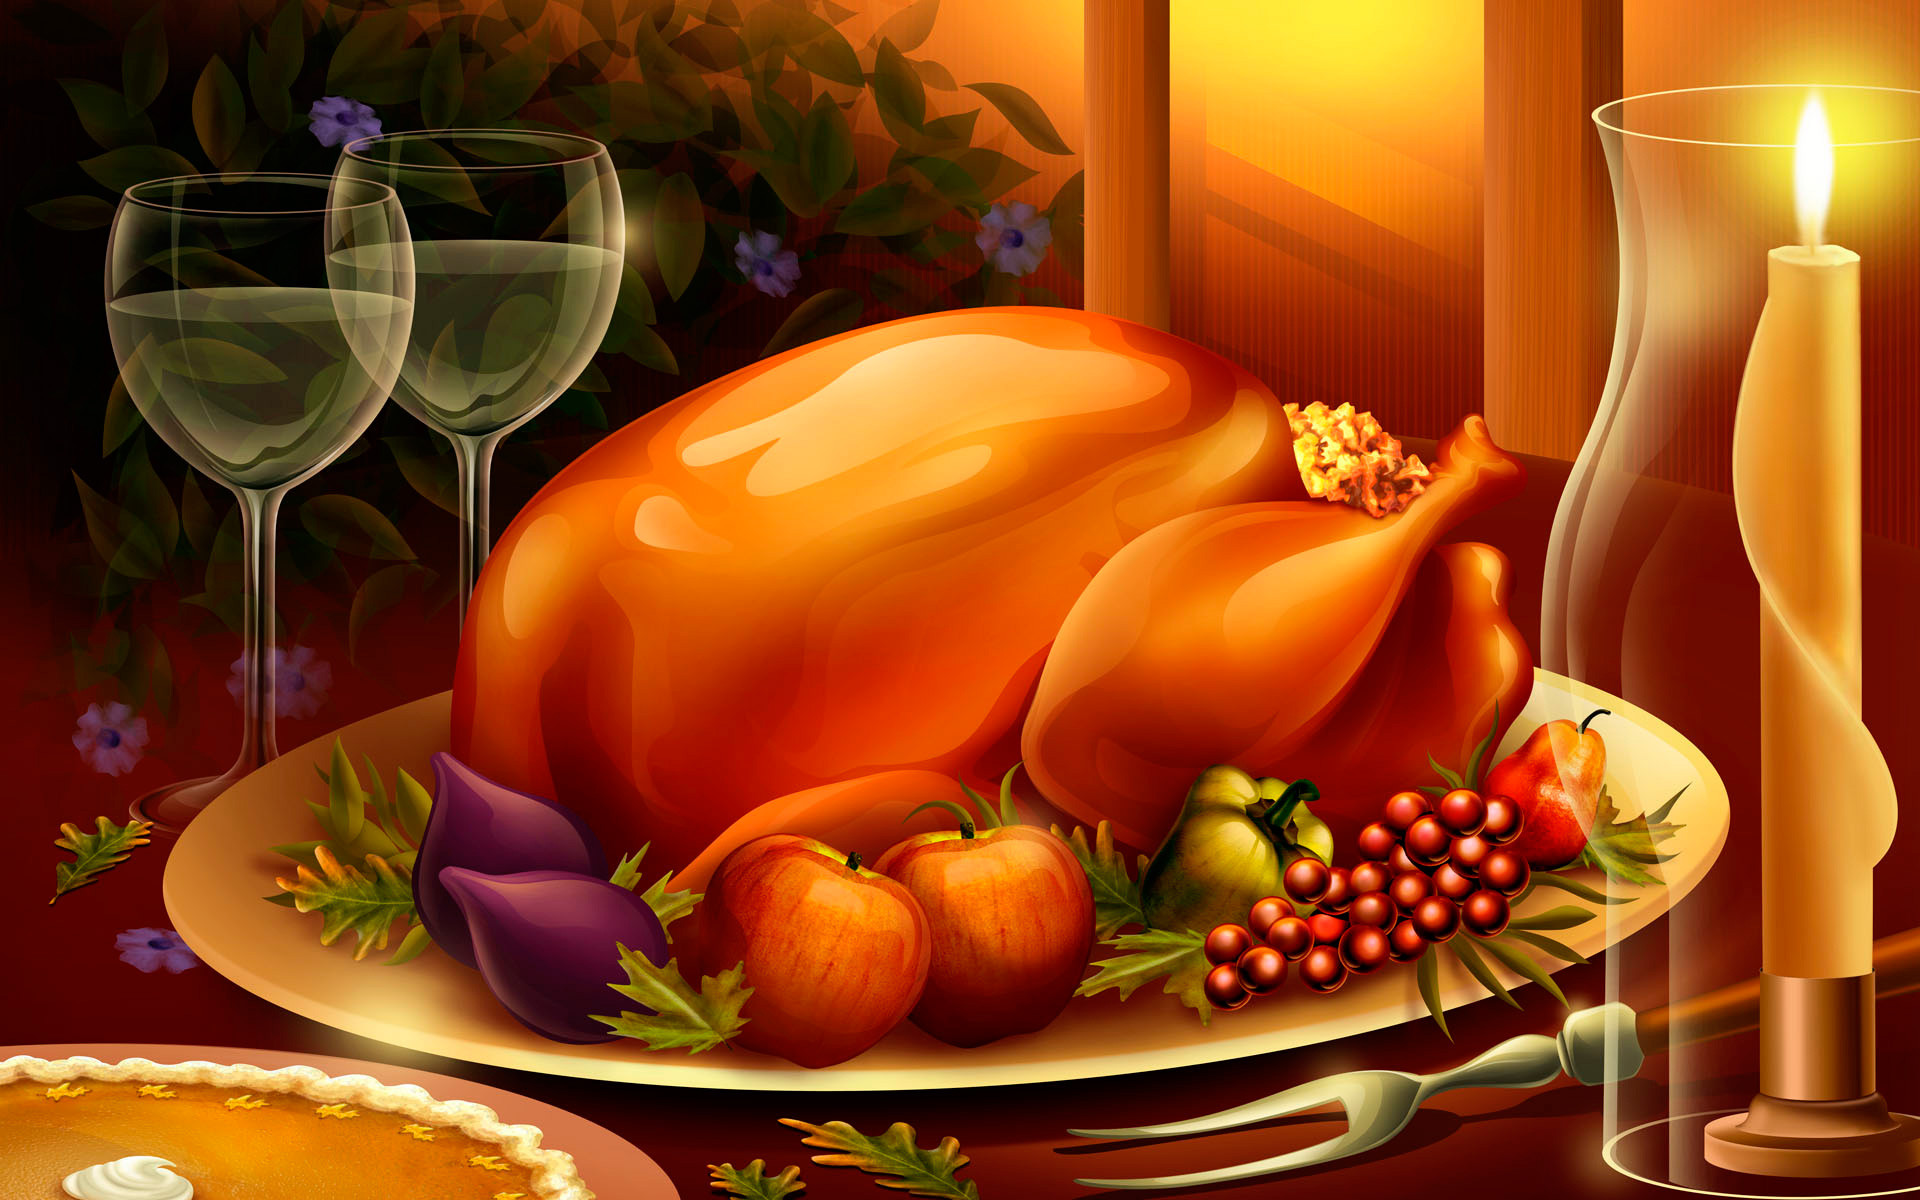 Thanksgiving Turkey Wallpaper  Thanksgiving Wallpaper Download Desktop Thanksgiving